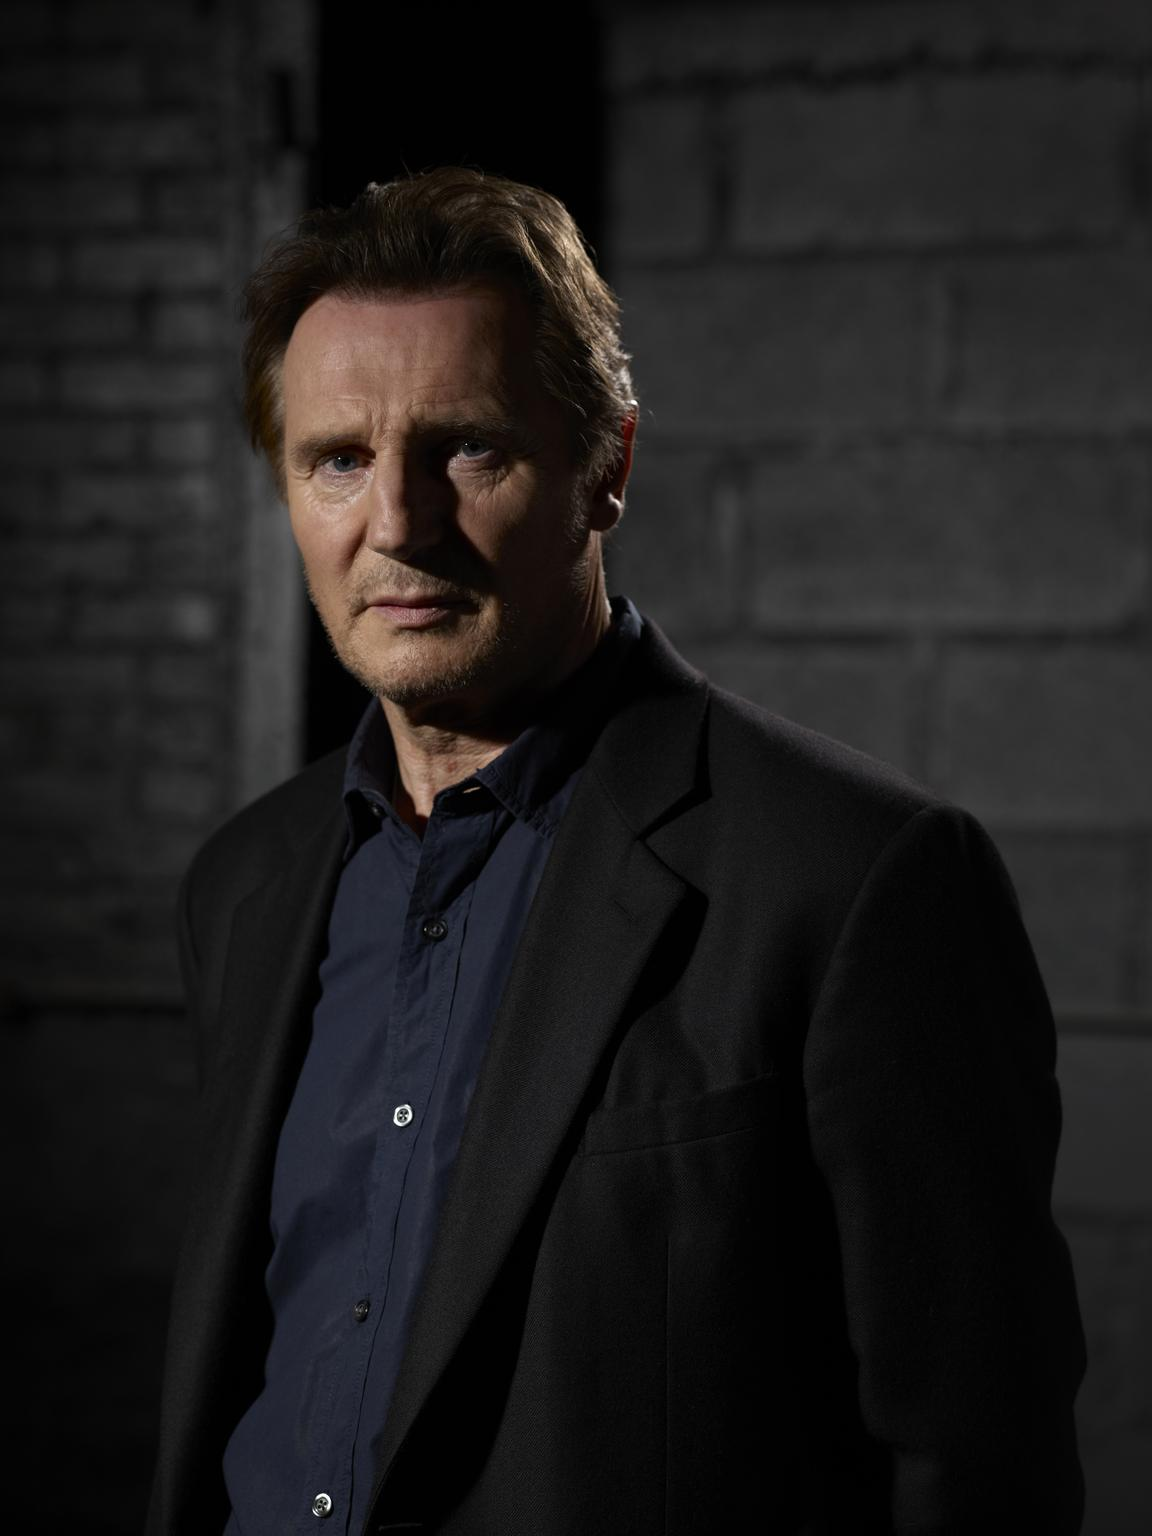 In 2013 UNICEF Goodwill Ambassador Liam Neeson joined UNICEF in urging people to speak out when they witness or suspect violence against children. More information about the #ENDviolence initiative is available here: http://www.unicef.org/endviolence/ © UNICEF/NYHQ2013-0512/Toledano